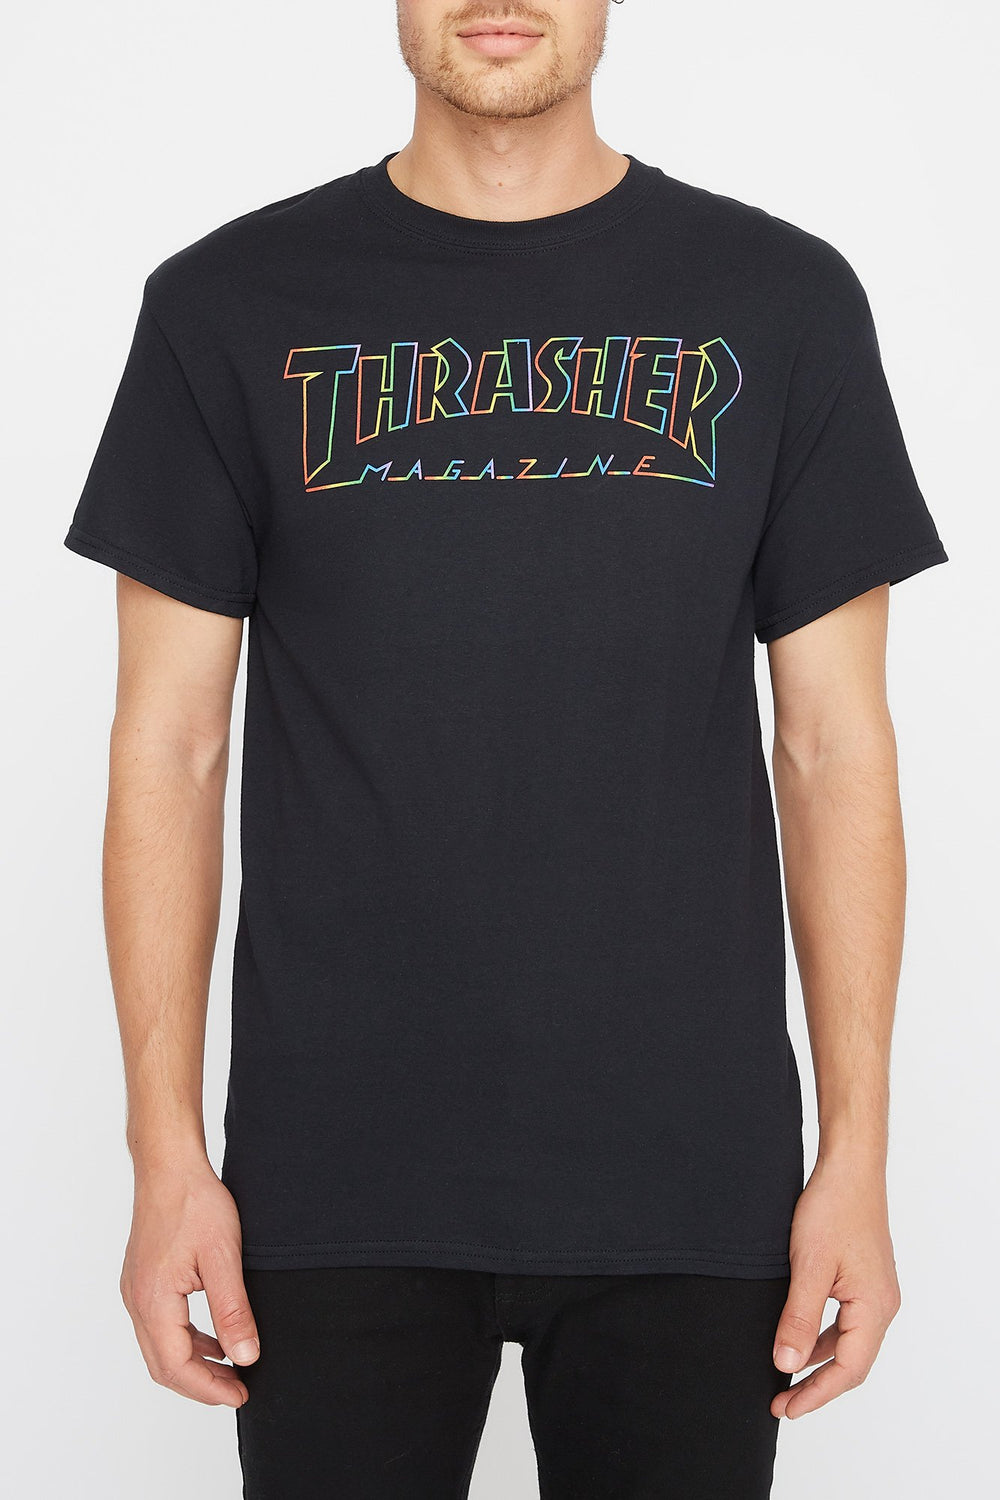 Thrasher Spectrum T-Shirt Black